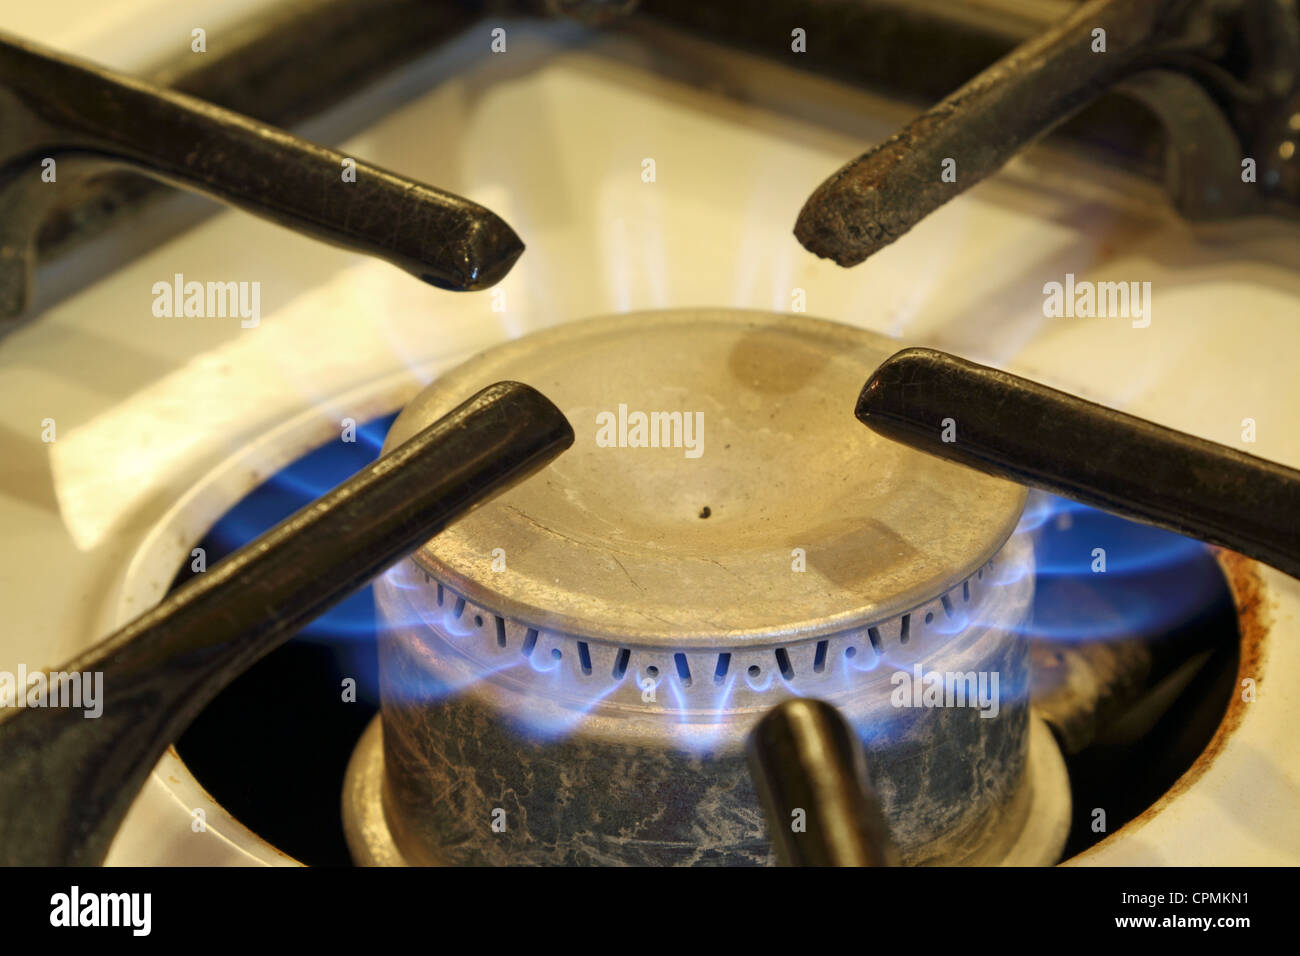 Gas jet burning on an old stove. - Stock Image